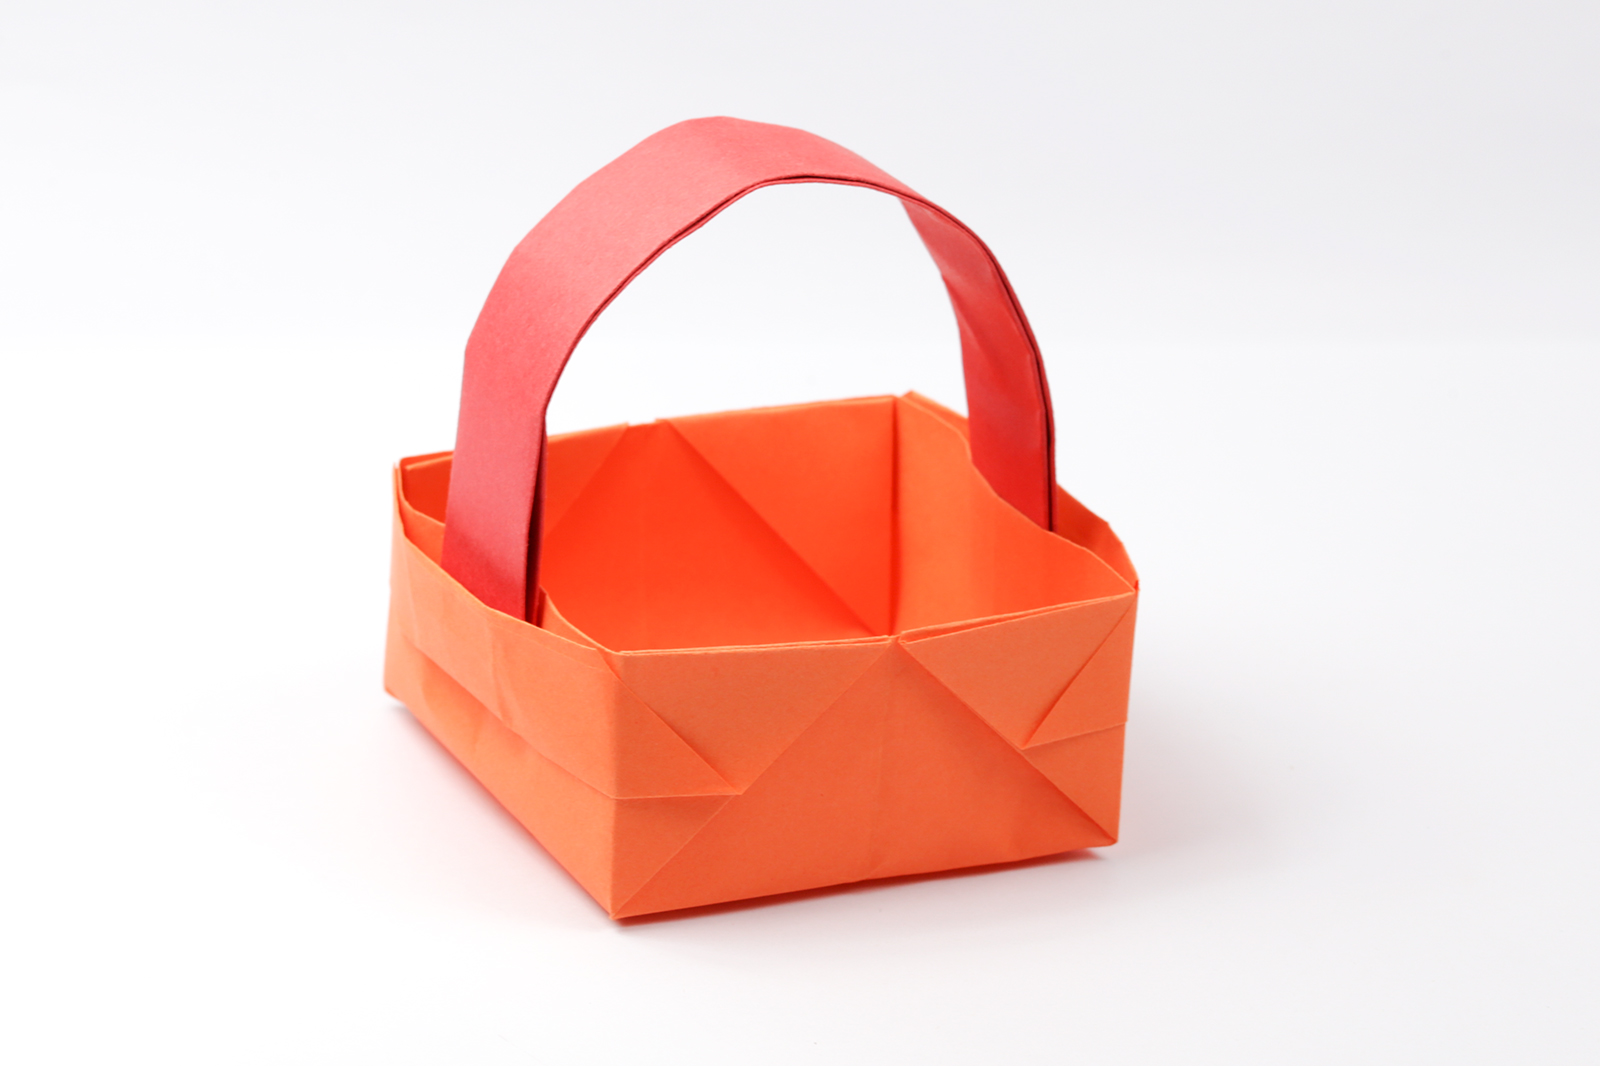 Easy DIY Origami Easter Bunny Baskets for Android - APK Download | 1066x1600